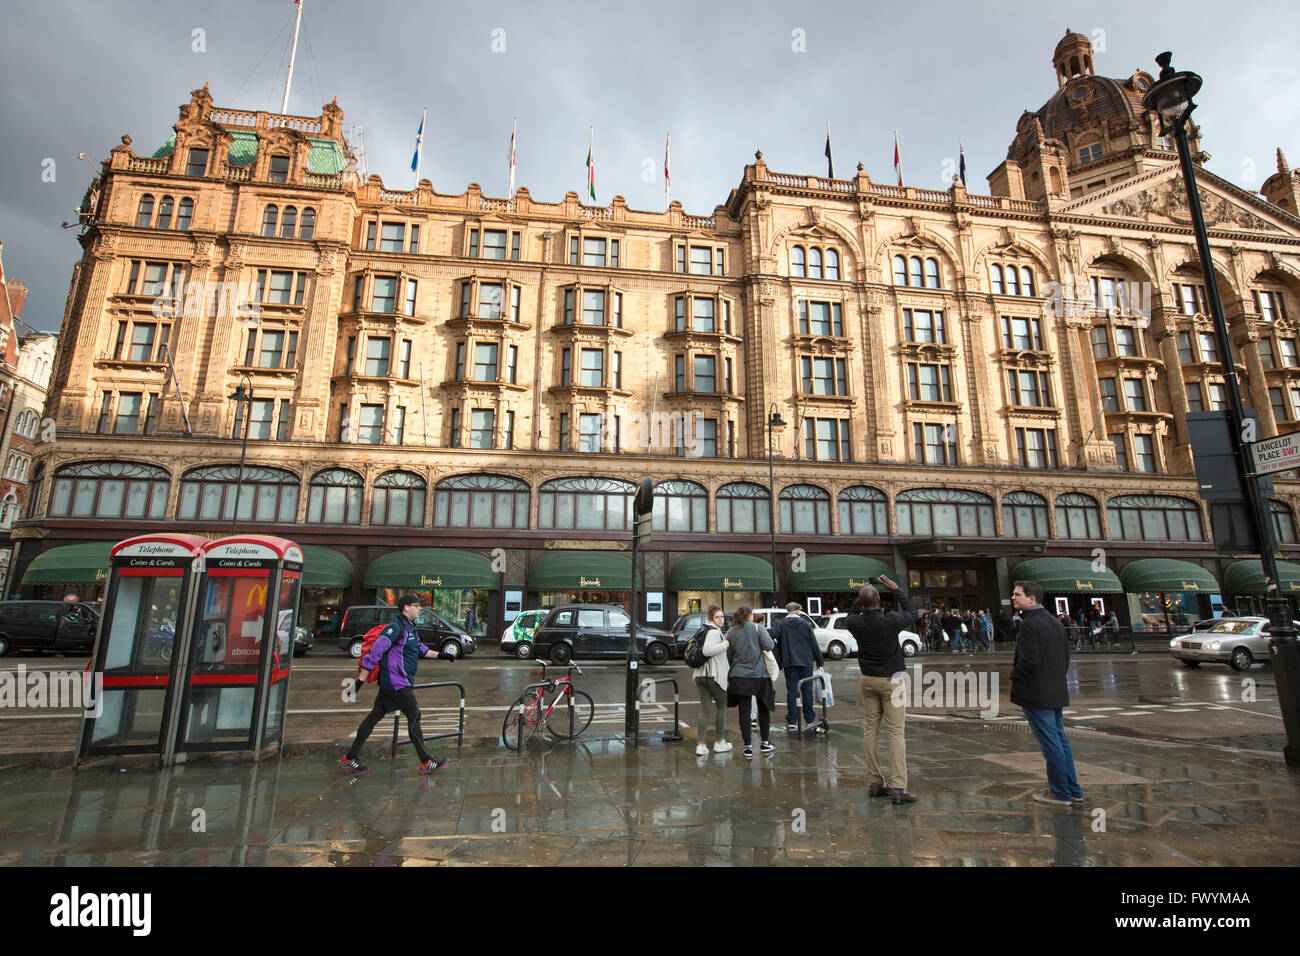 Exterior of Harrods luxury department store on a gray stormy day, Brompton Road, London, England, UK - Stock Image